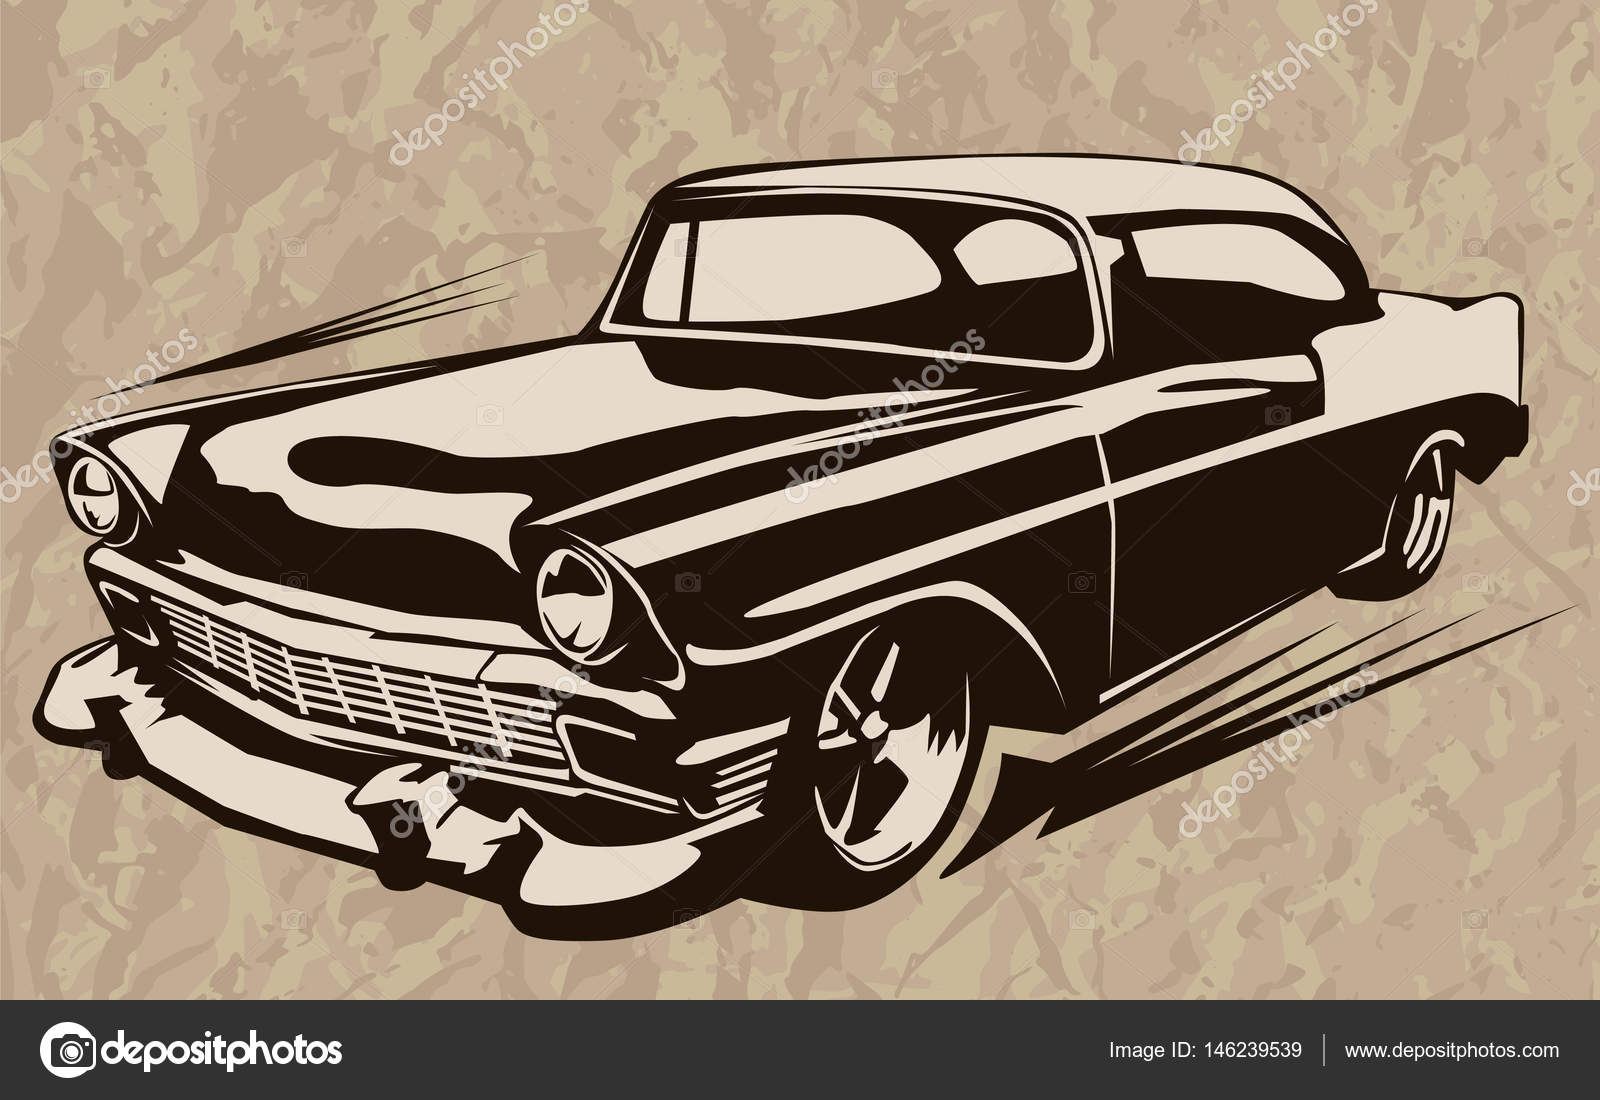 Muscle car abstract vintage sketch 1 — Stock Vector © LIORIKI #146239539